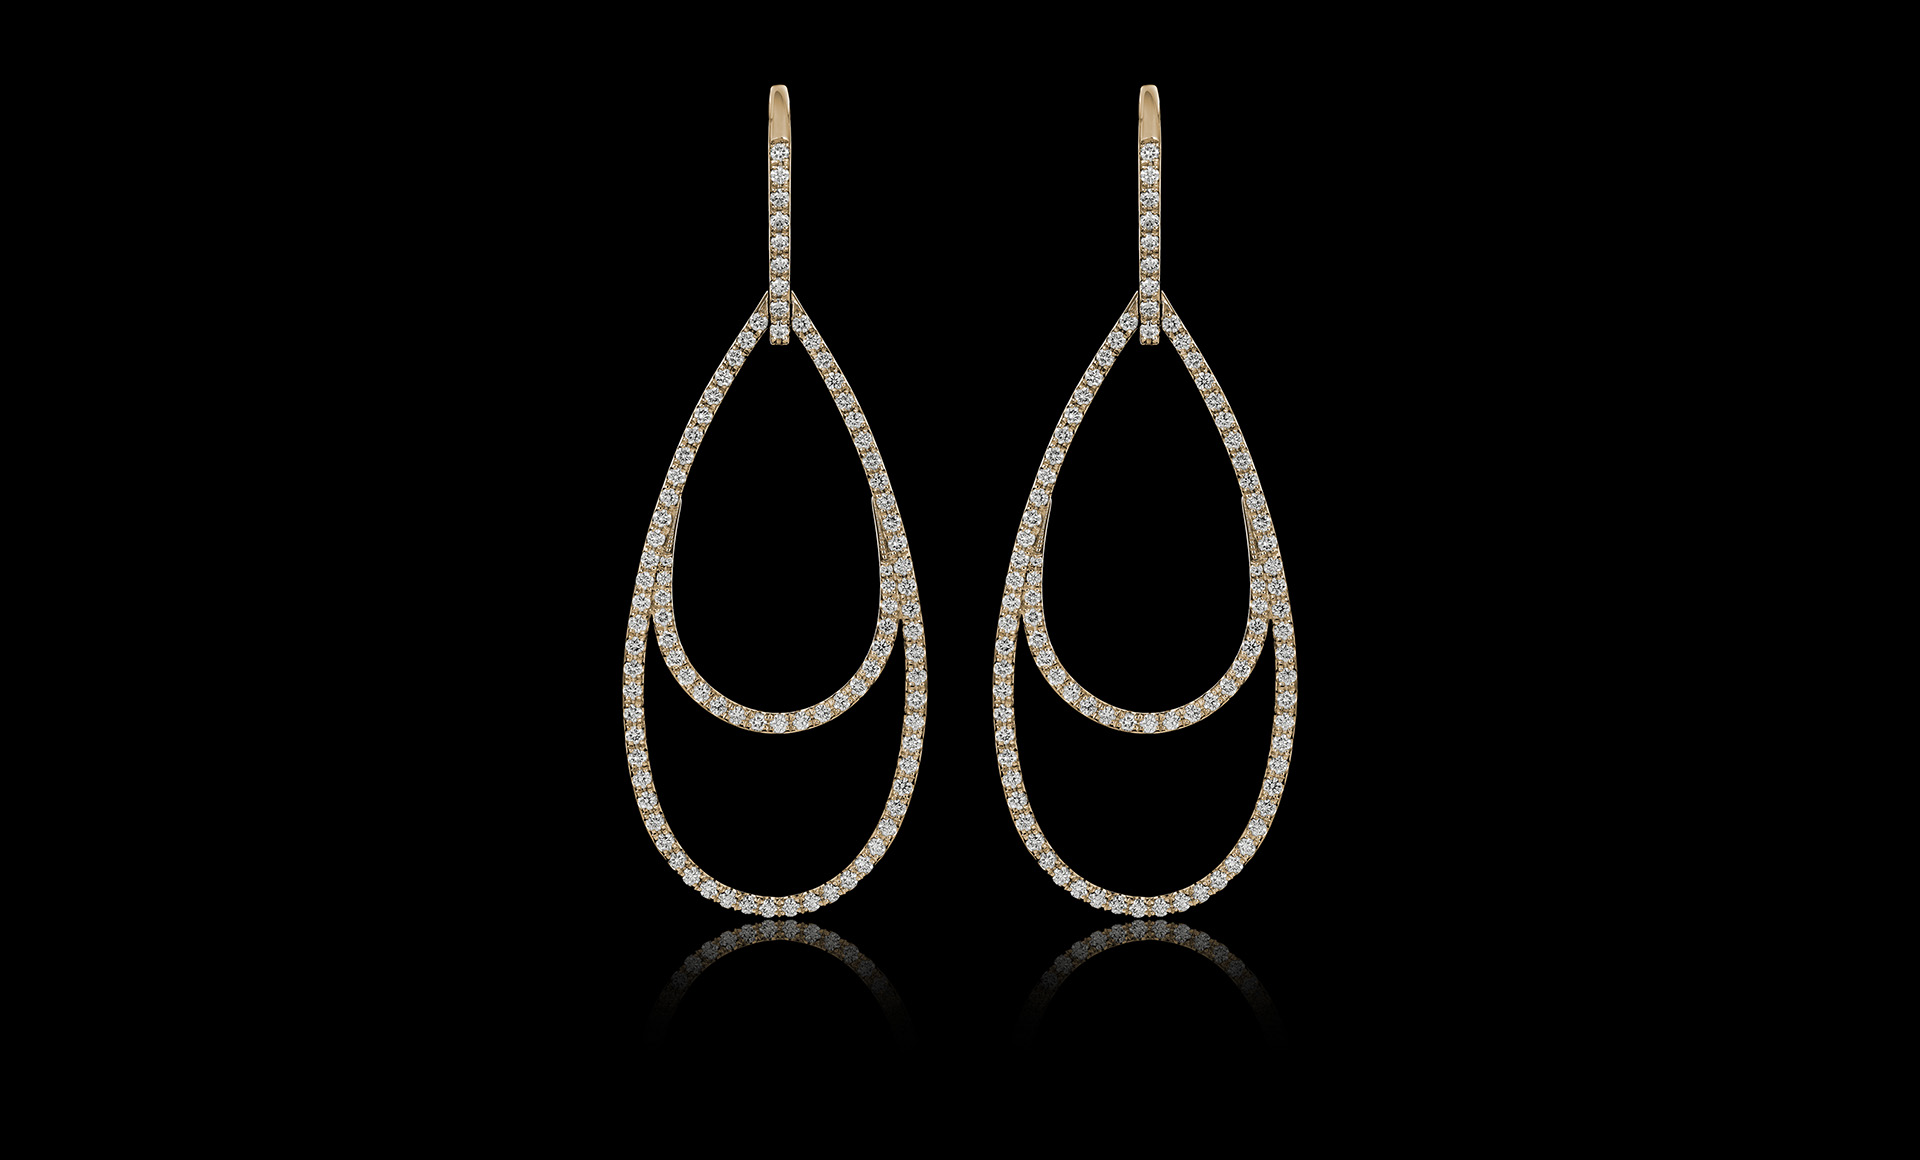 Montluc - Ellipse No.1, a raindrop-shaped diamond earring.